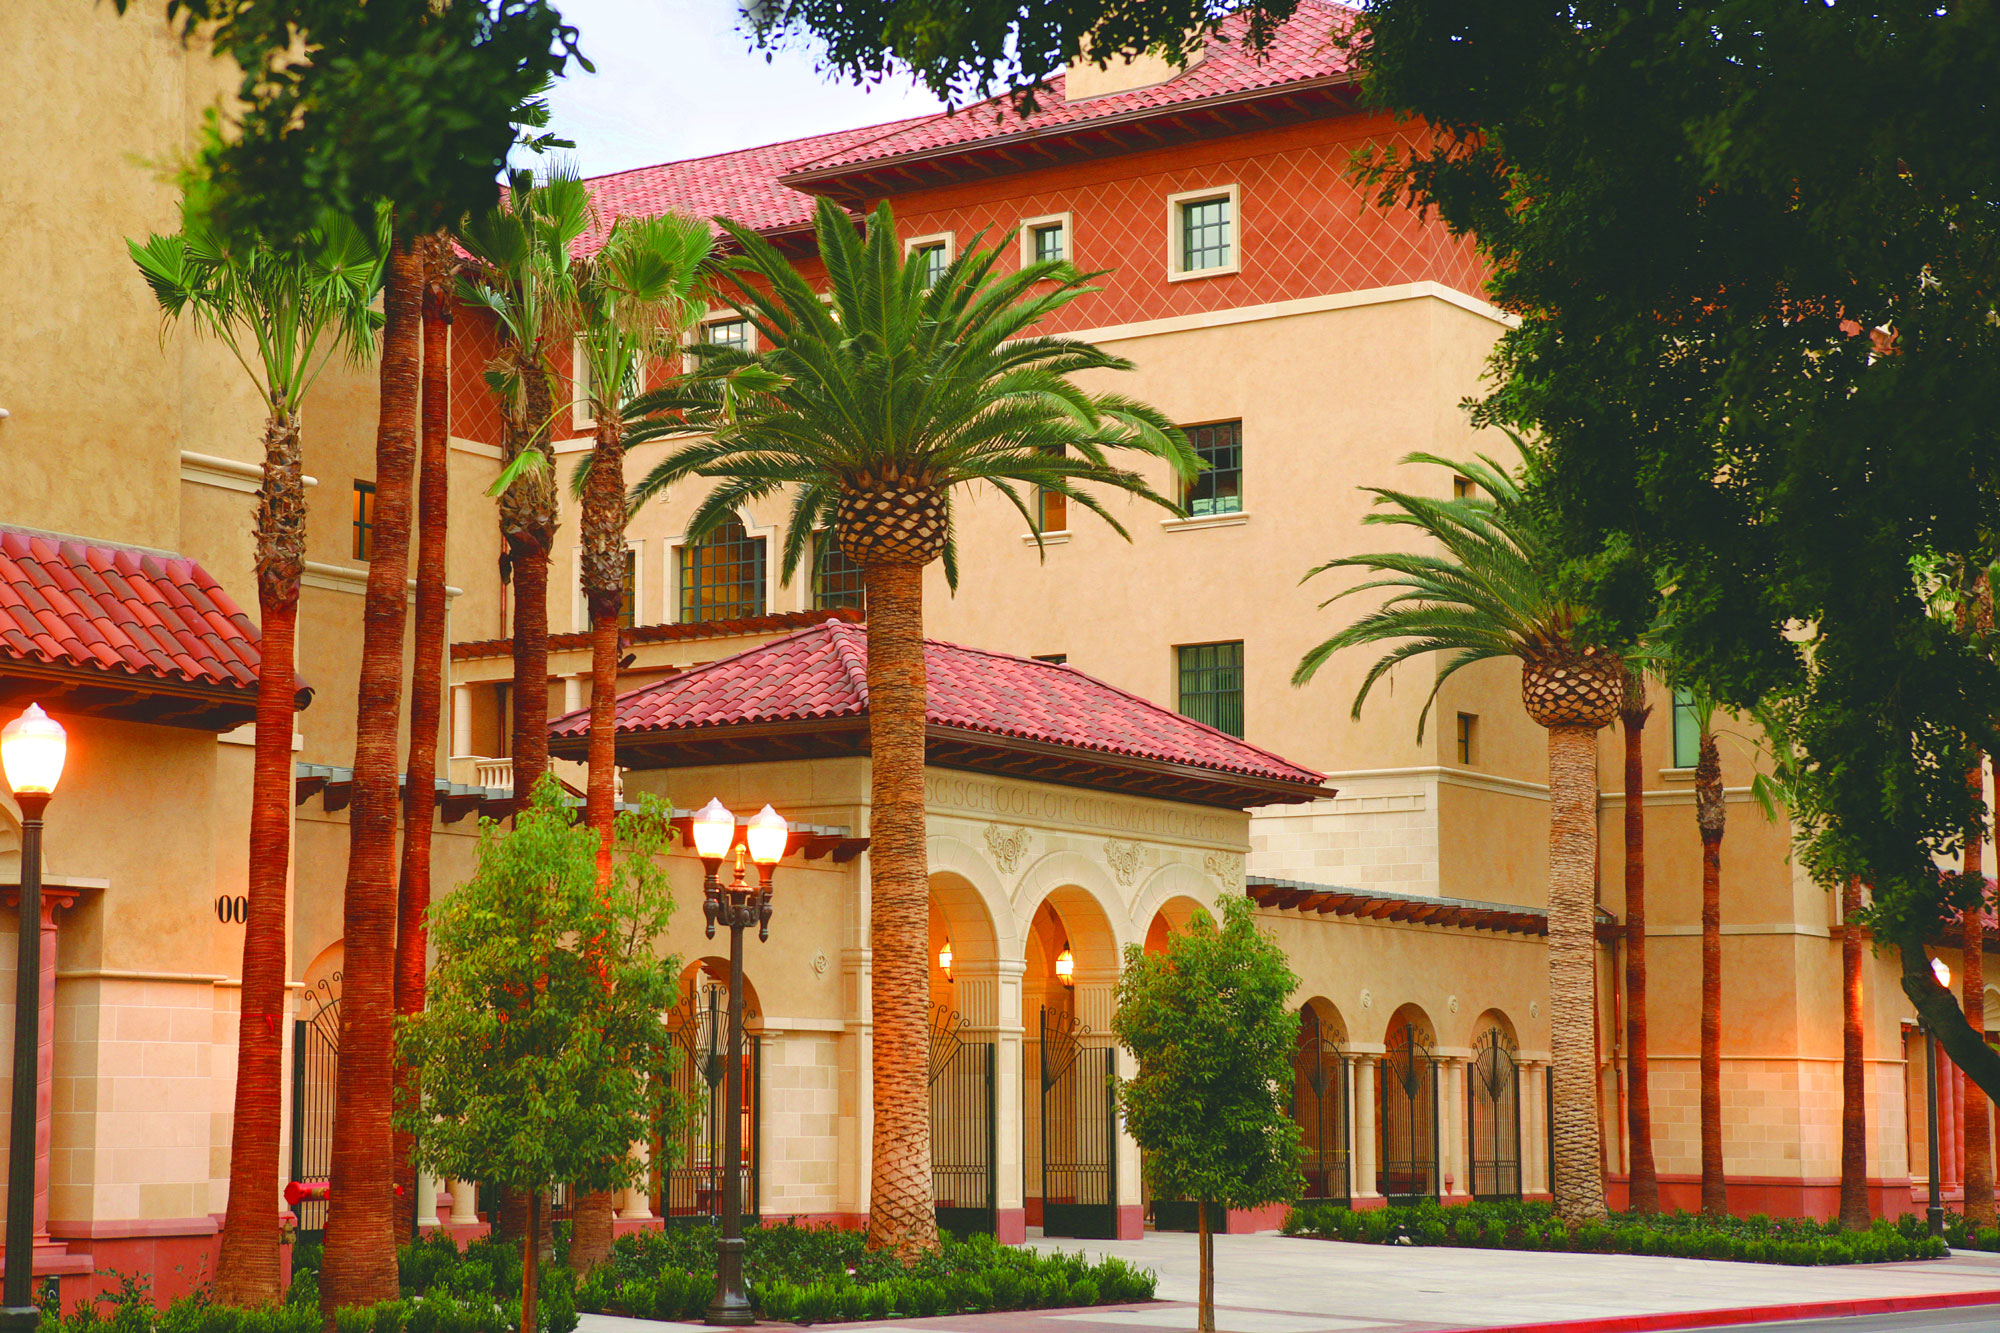 USC School of Cinematic Arts Front-gate